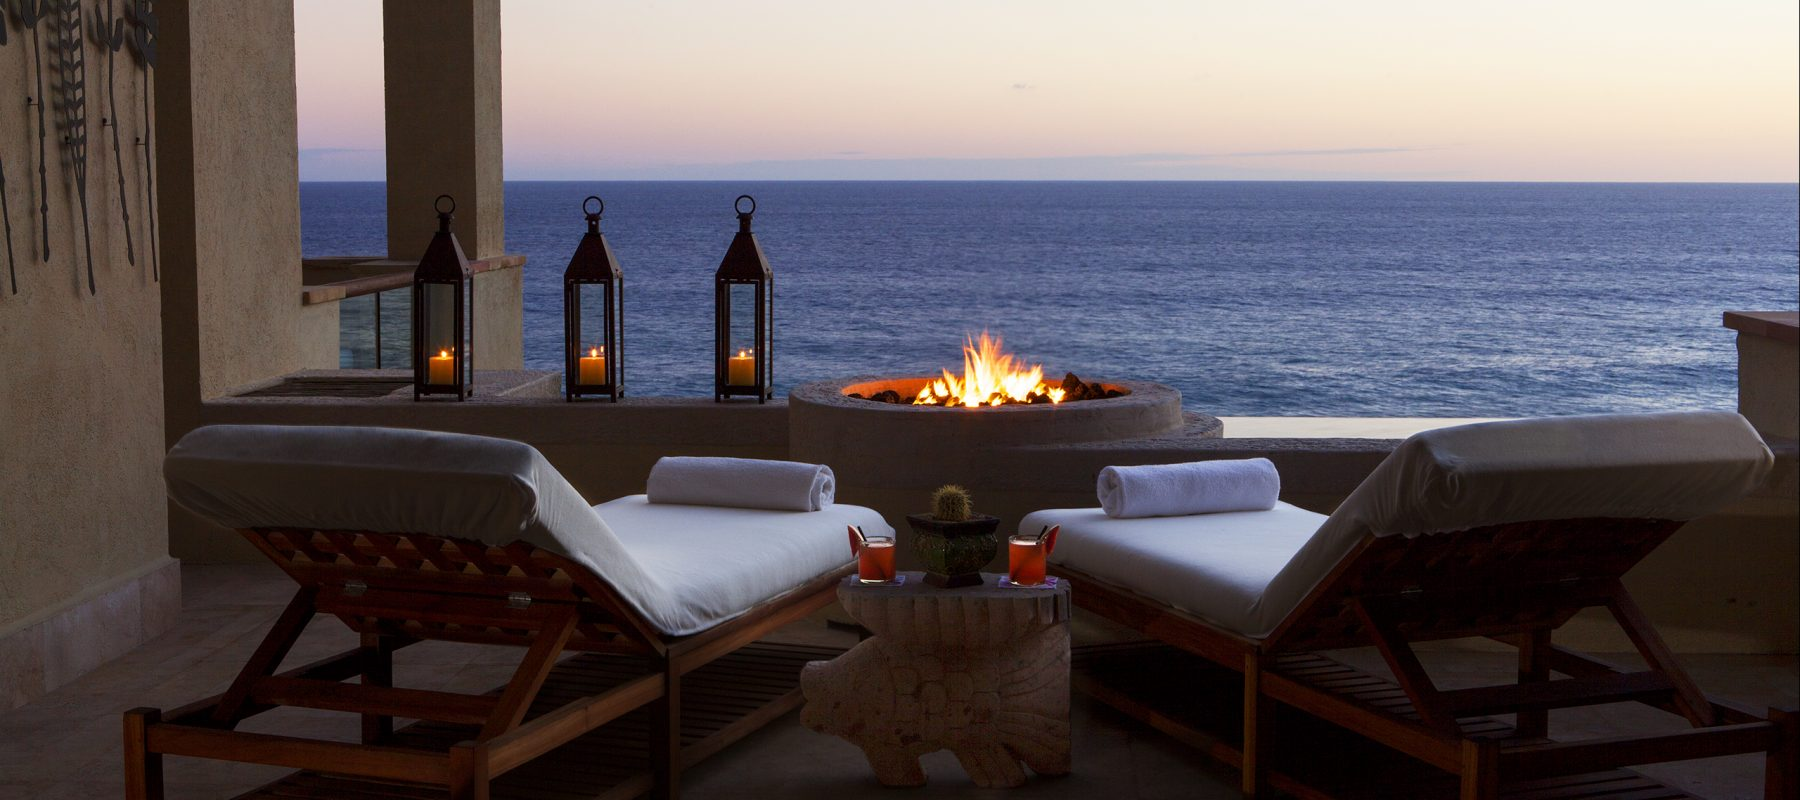 A relaxing retreat in Cabo San Lucas: The private beach and firepit at The Resort at Pedregal